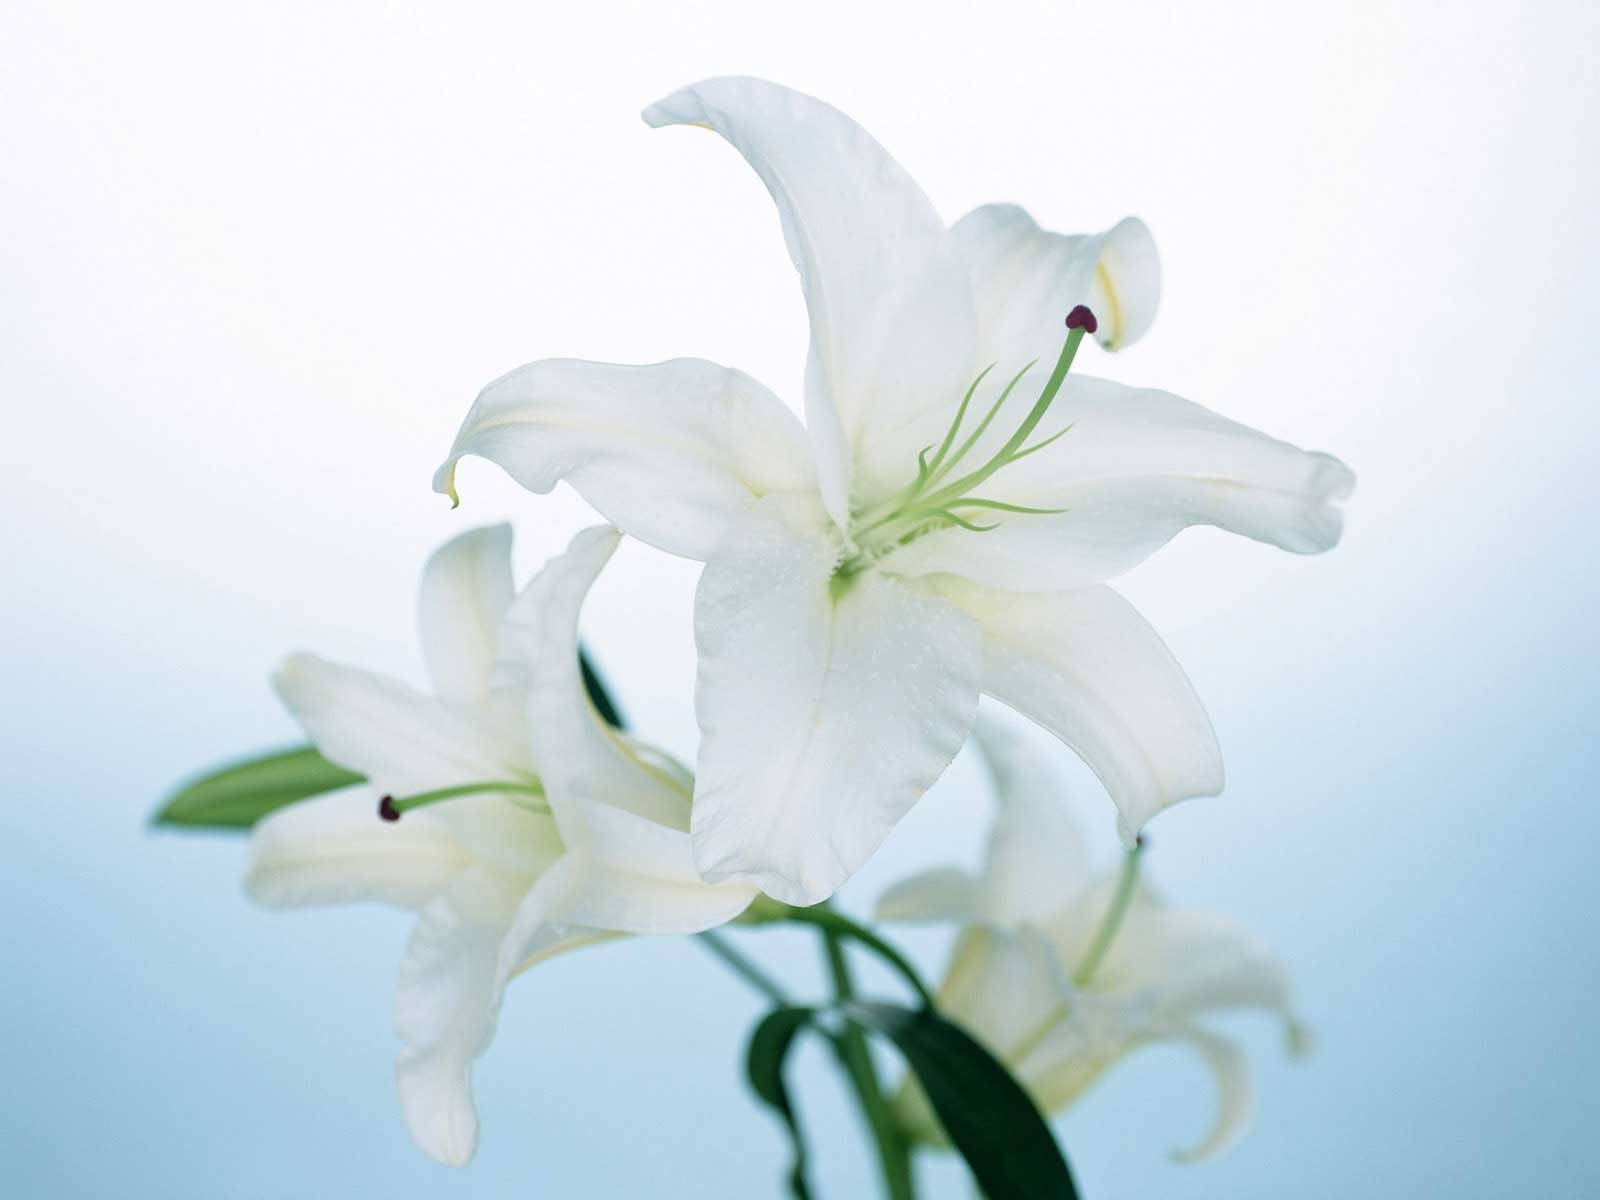 Fresh White Lily Flower Hd Wallpaper Wallpapers 1600x1200px